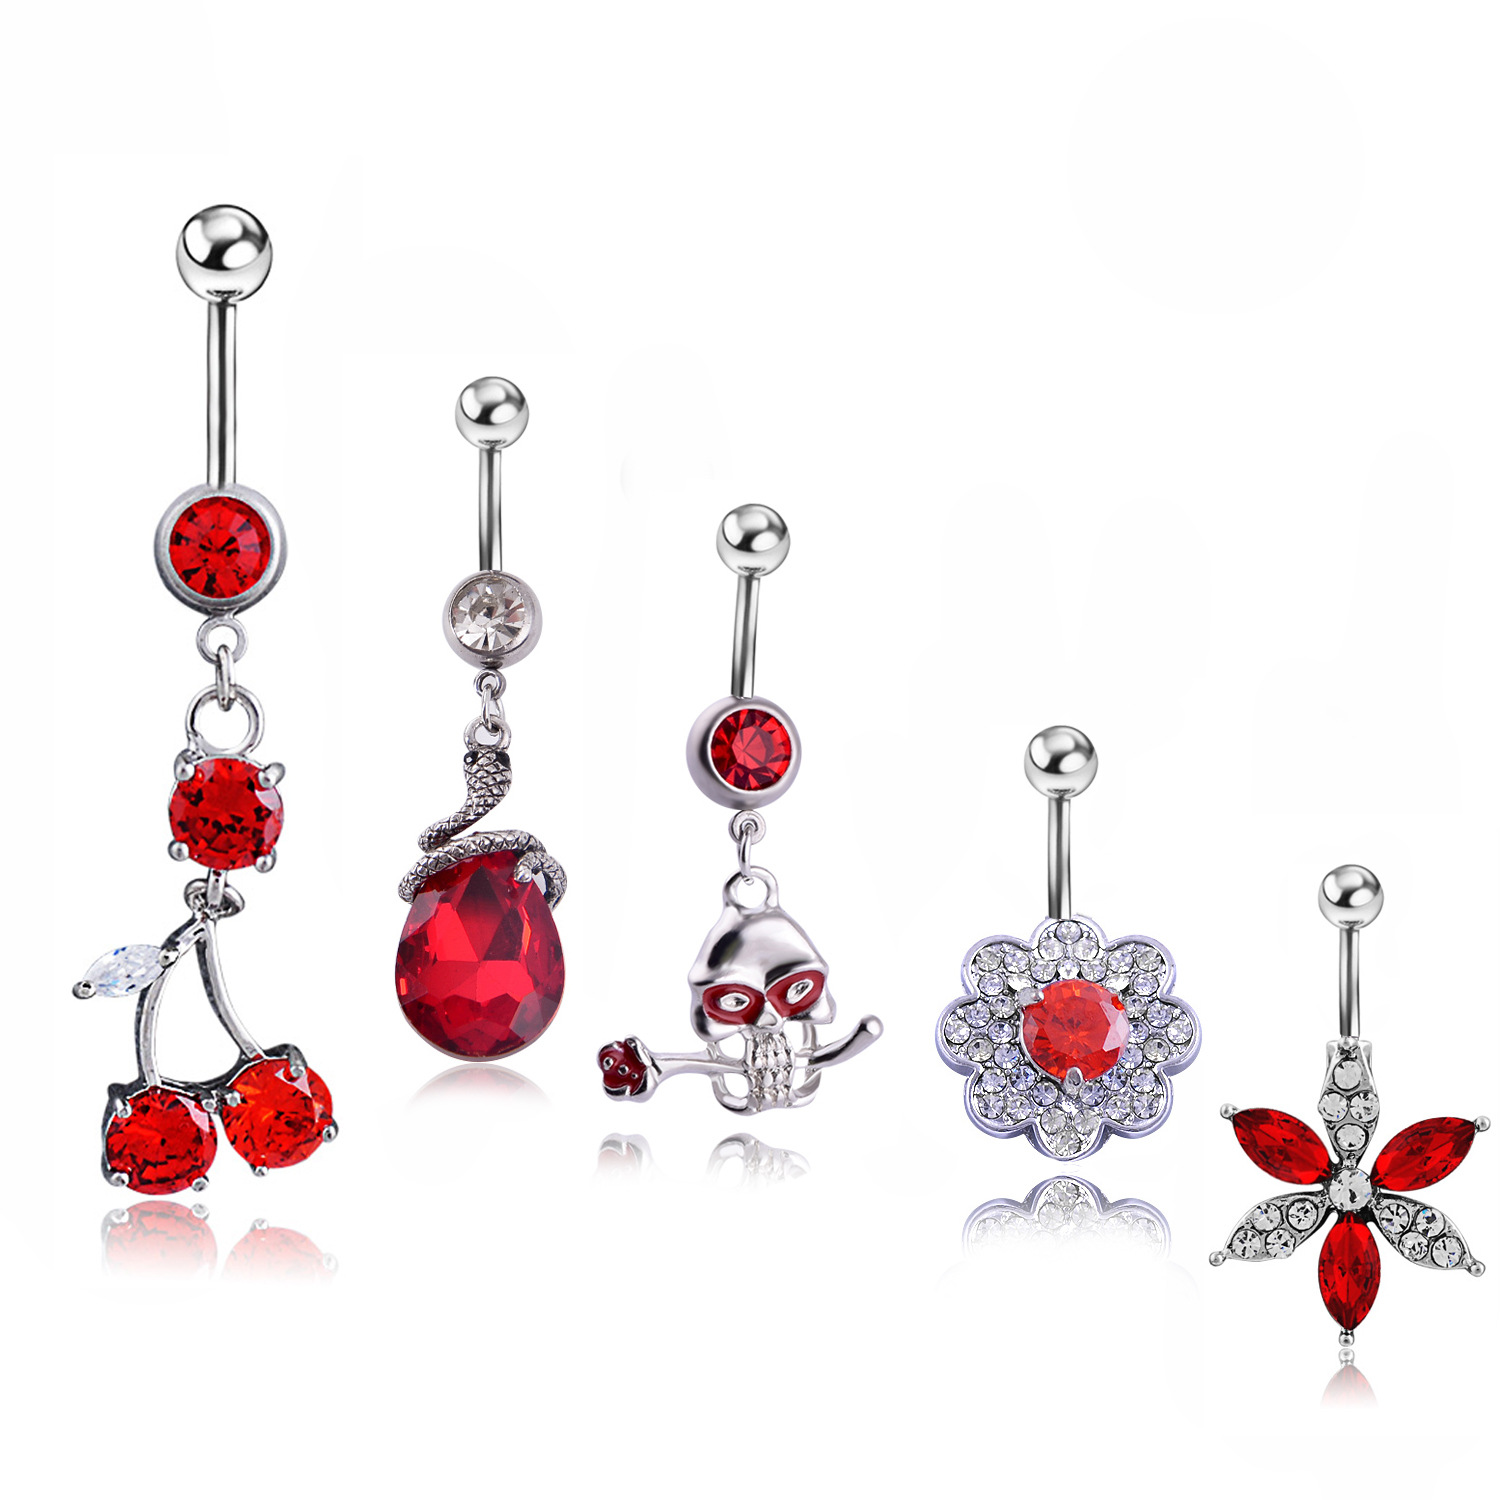 5pcs Set Red Zircon Cherries Belly Button Ring Medical Steel Anti-allergic Body Piercing Sexy Lady Navel Nail Piercing Jewelry